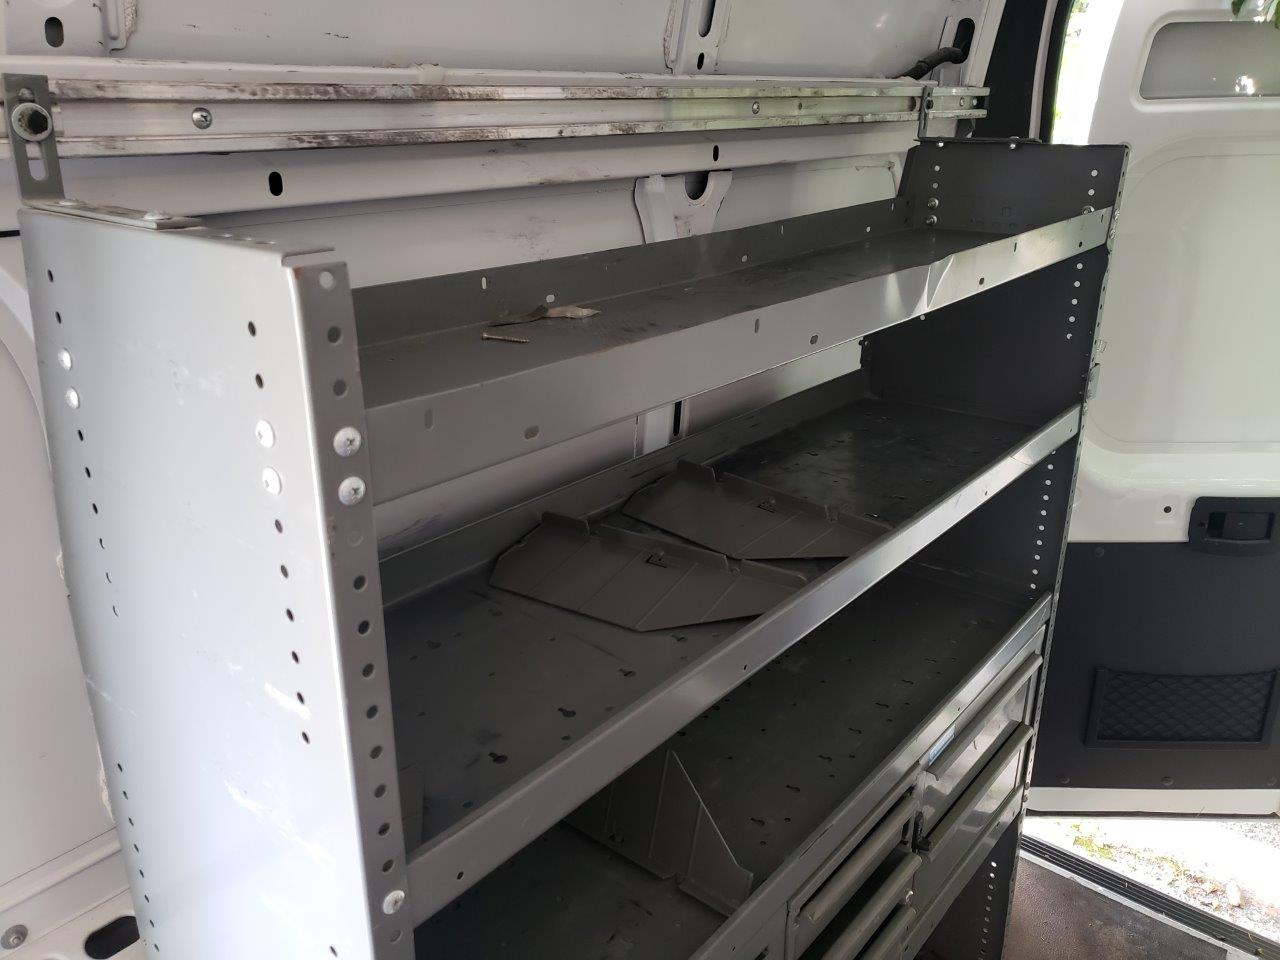 Set of Cabinets and Divider for Dodge RAM Promaster 2500